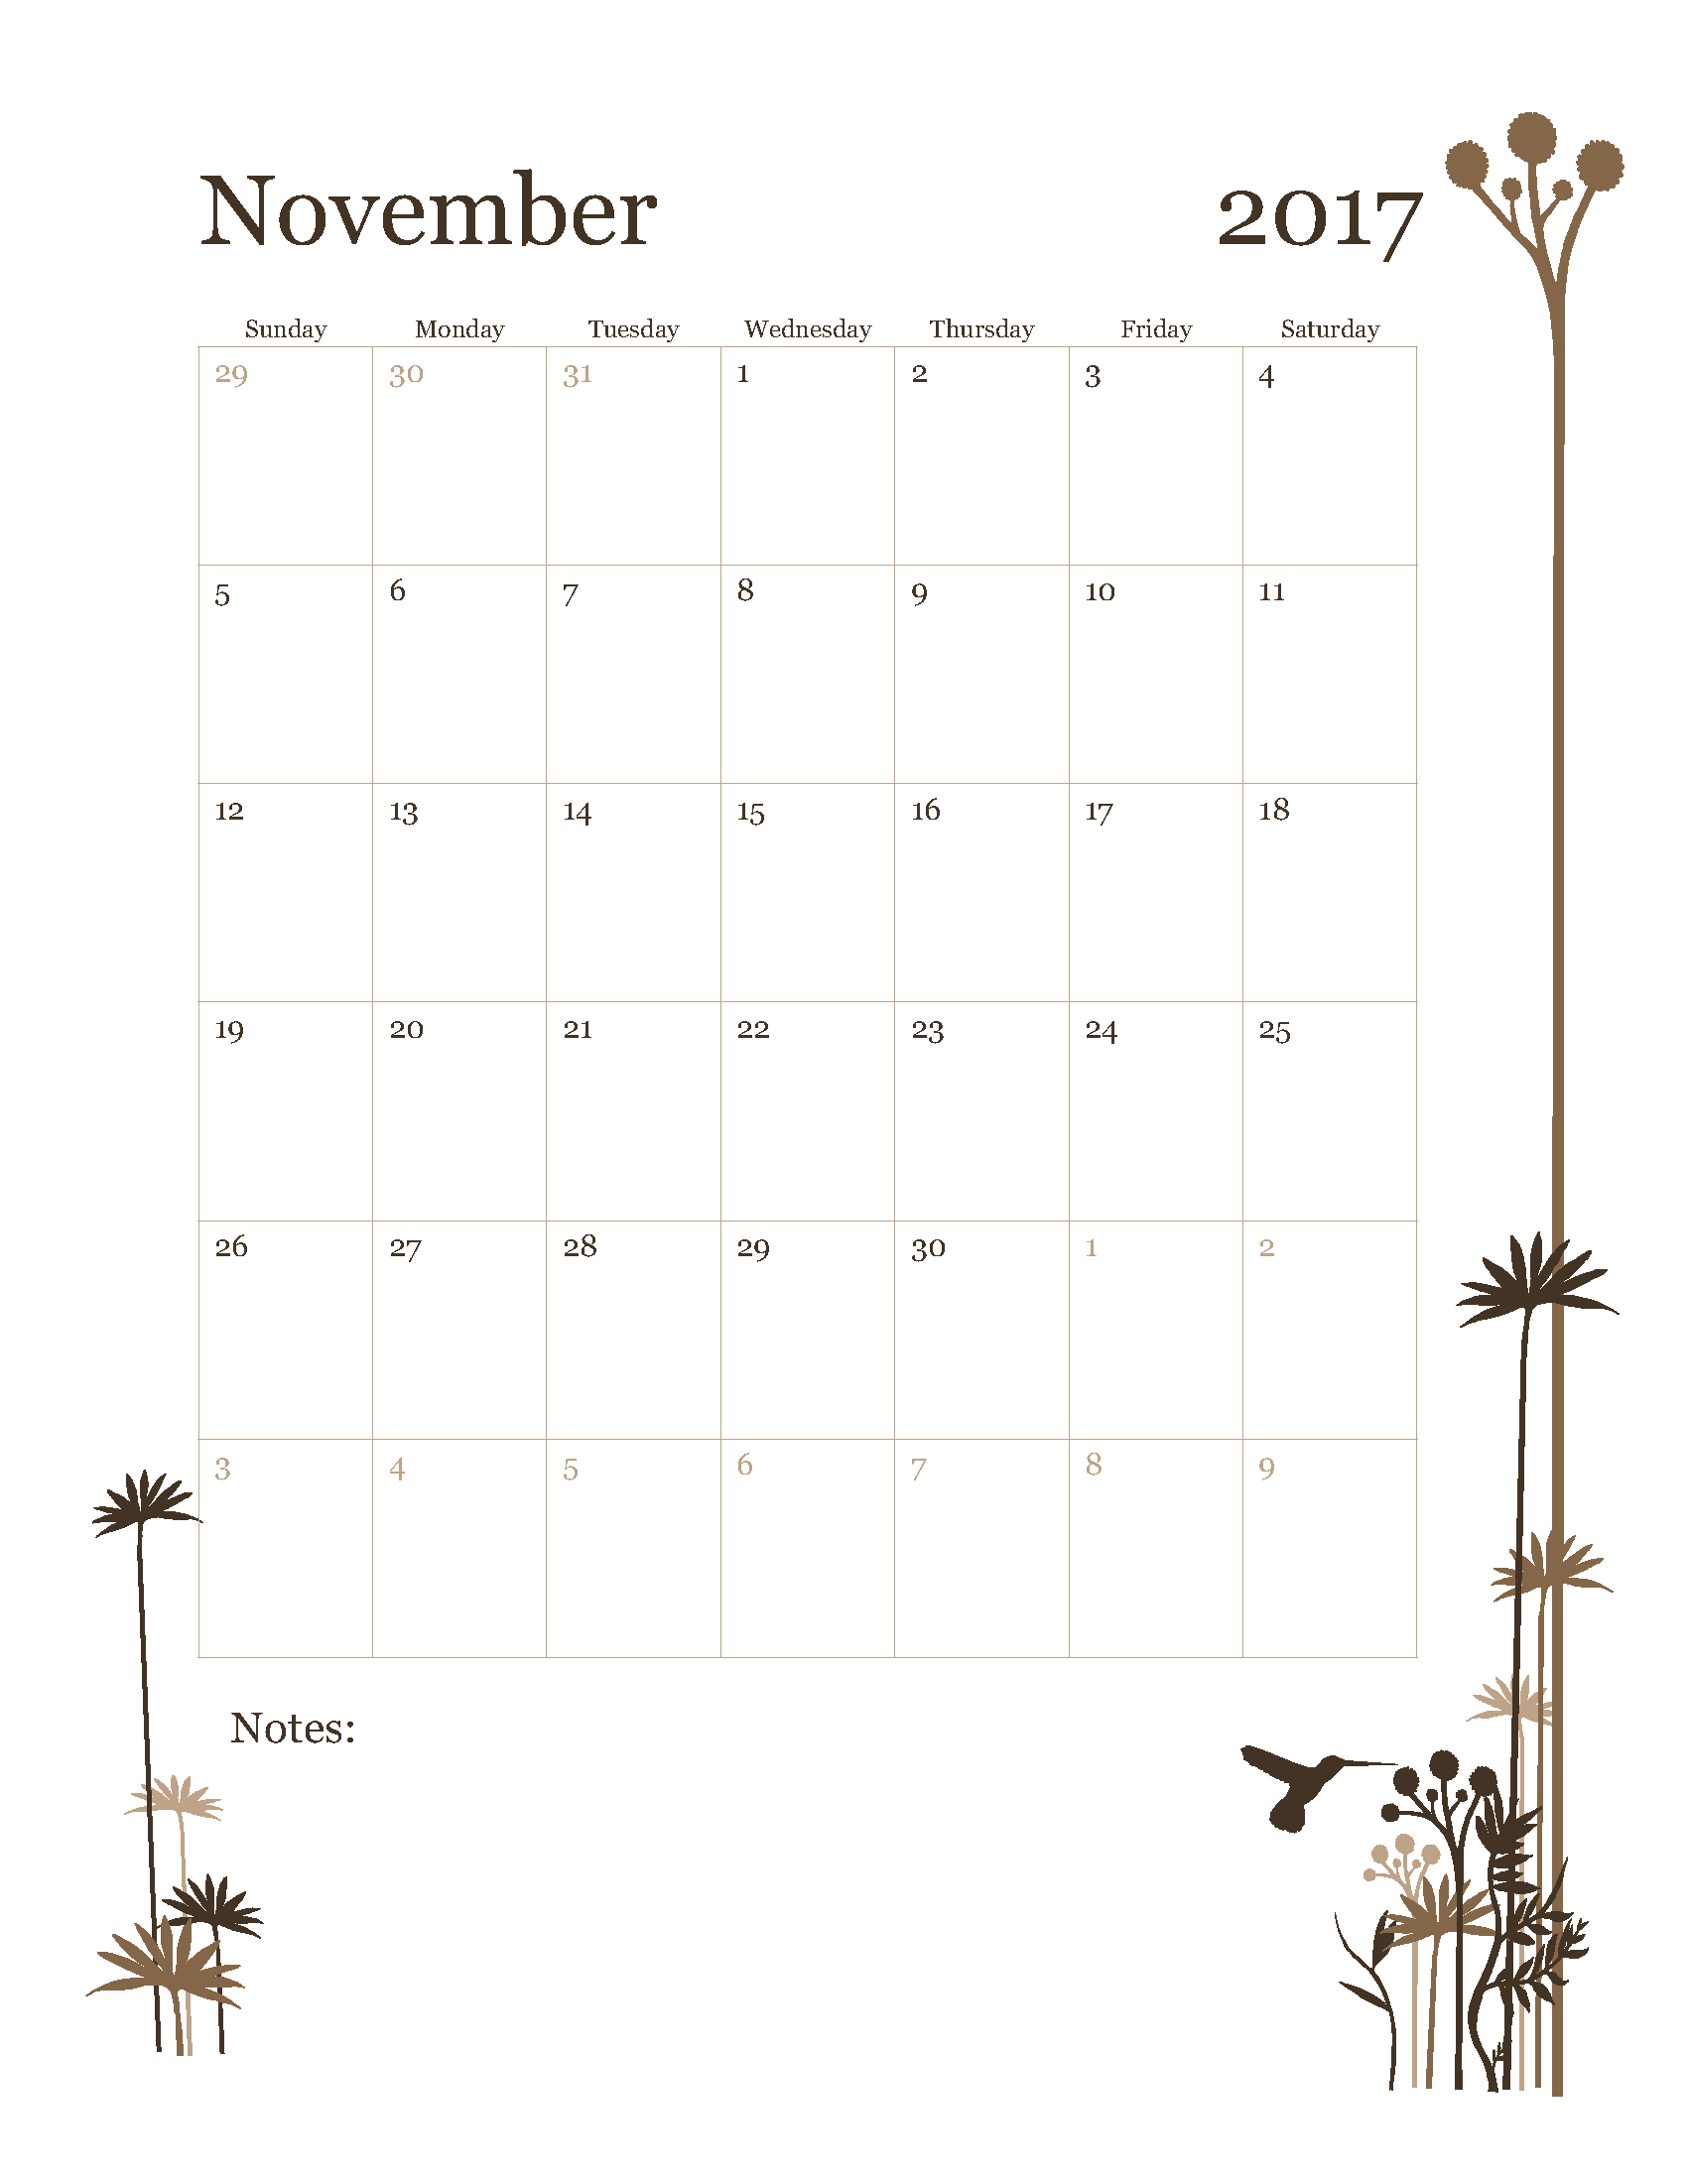 Free November 2017 Calendar Template Printable Start on Sunday - HummingBird design